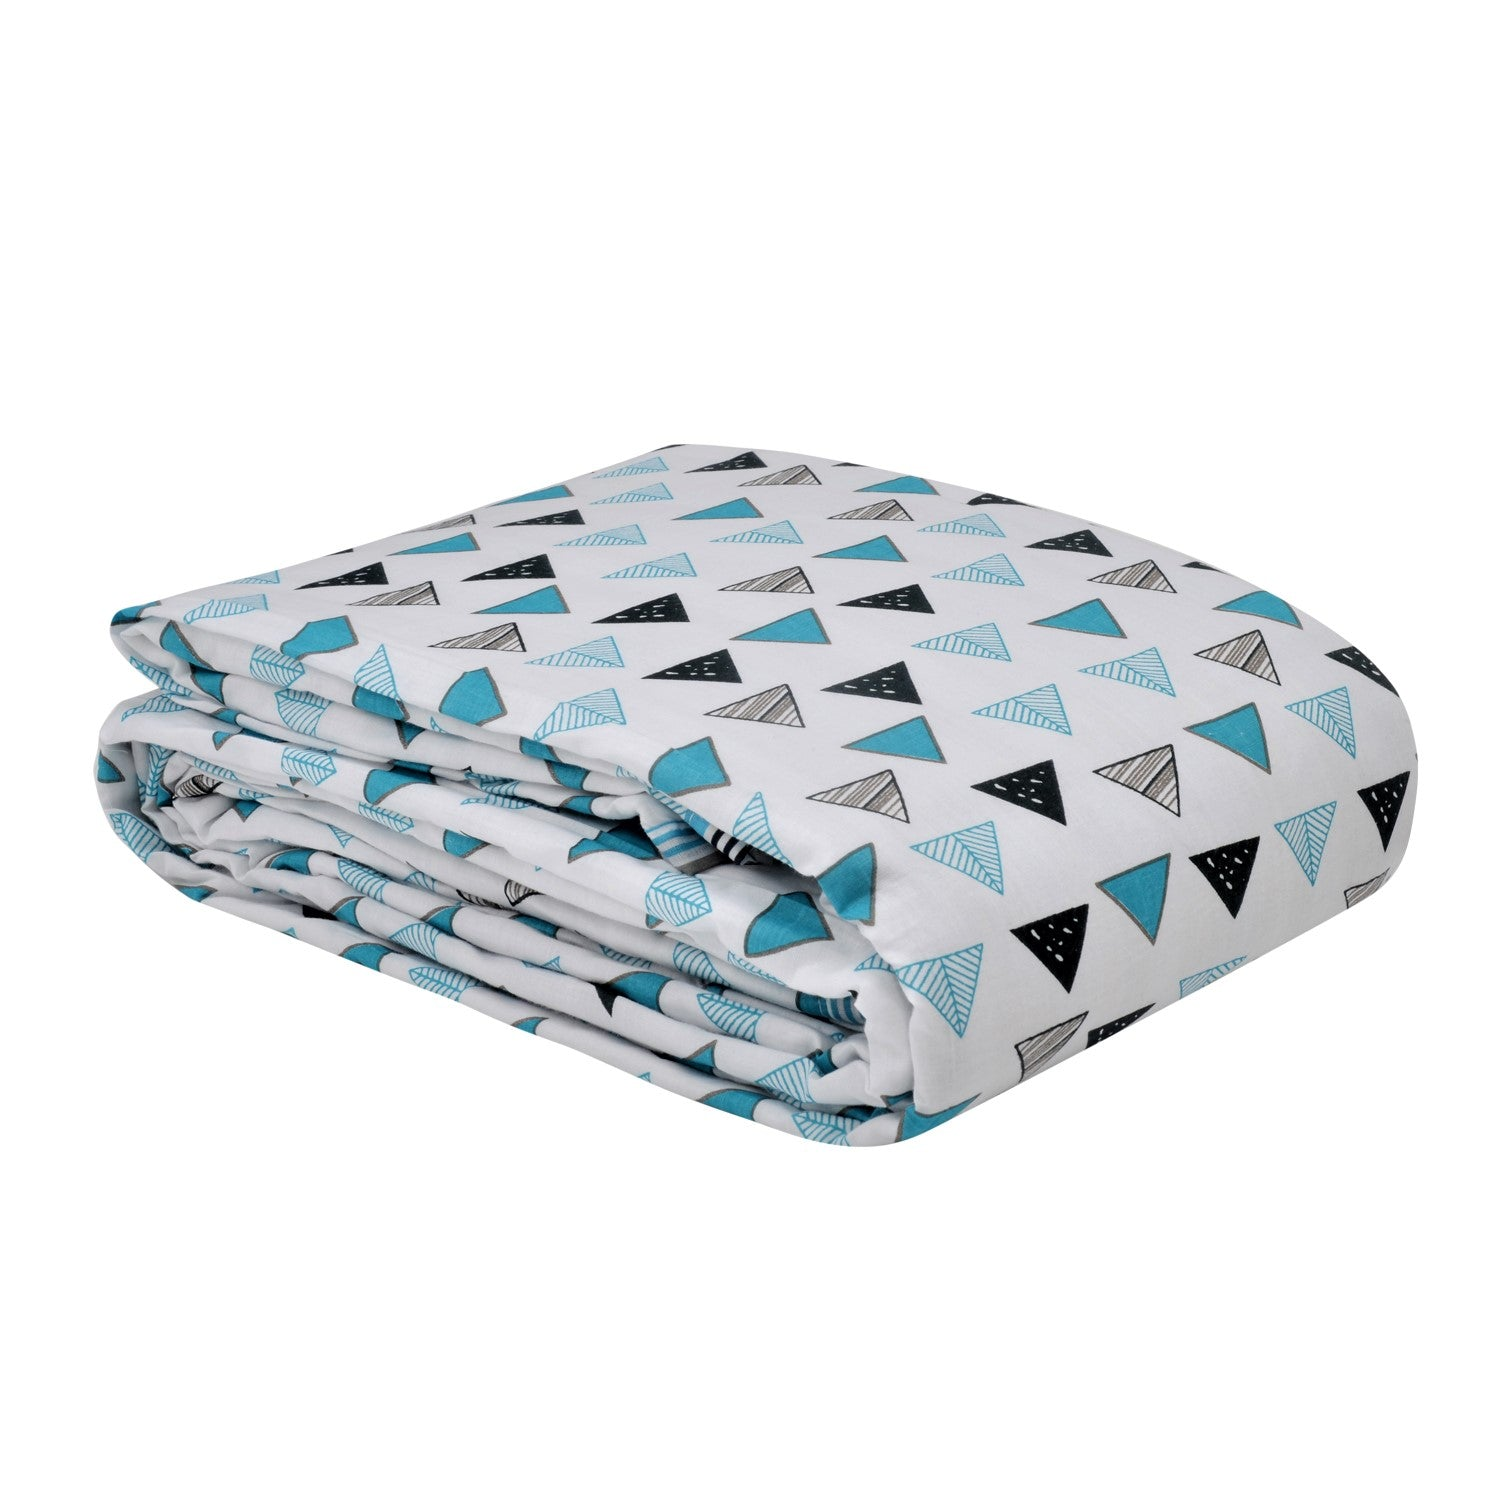 Trance Home Linen Cotton Double Dohar-TRIANGLES Blue Black